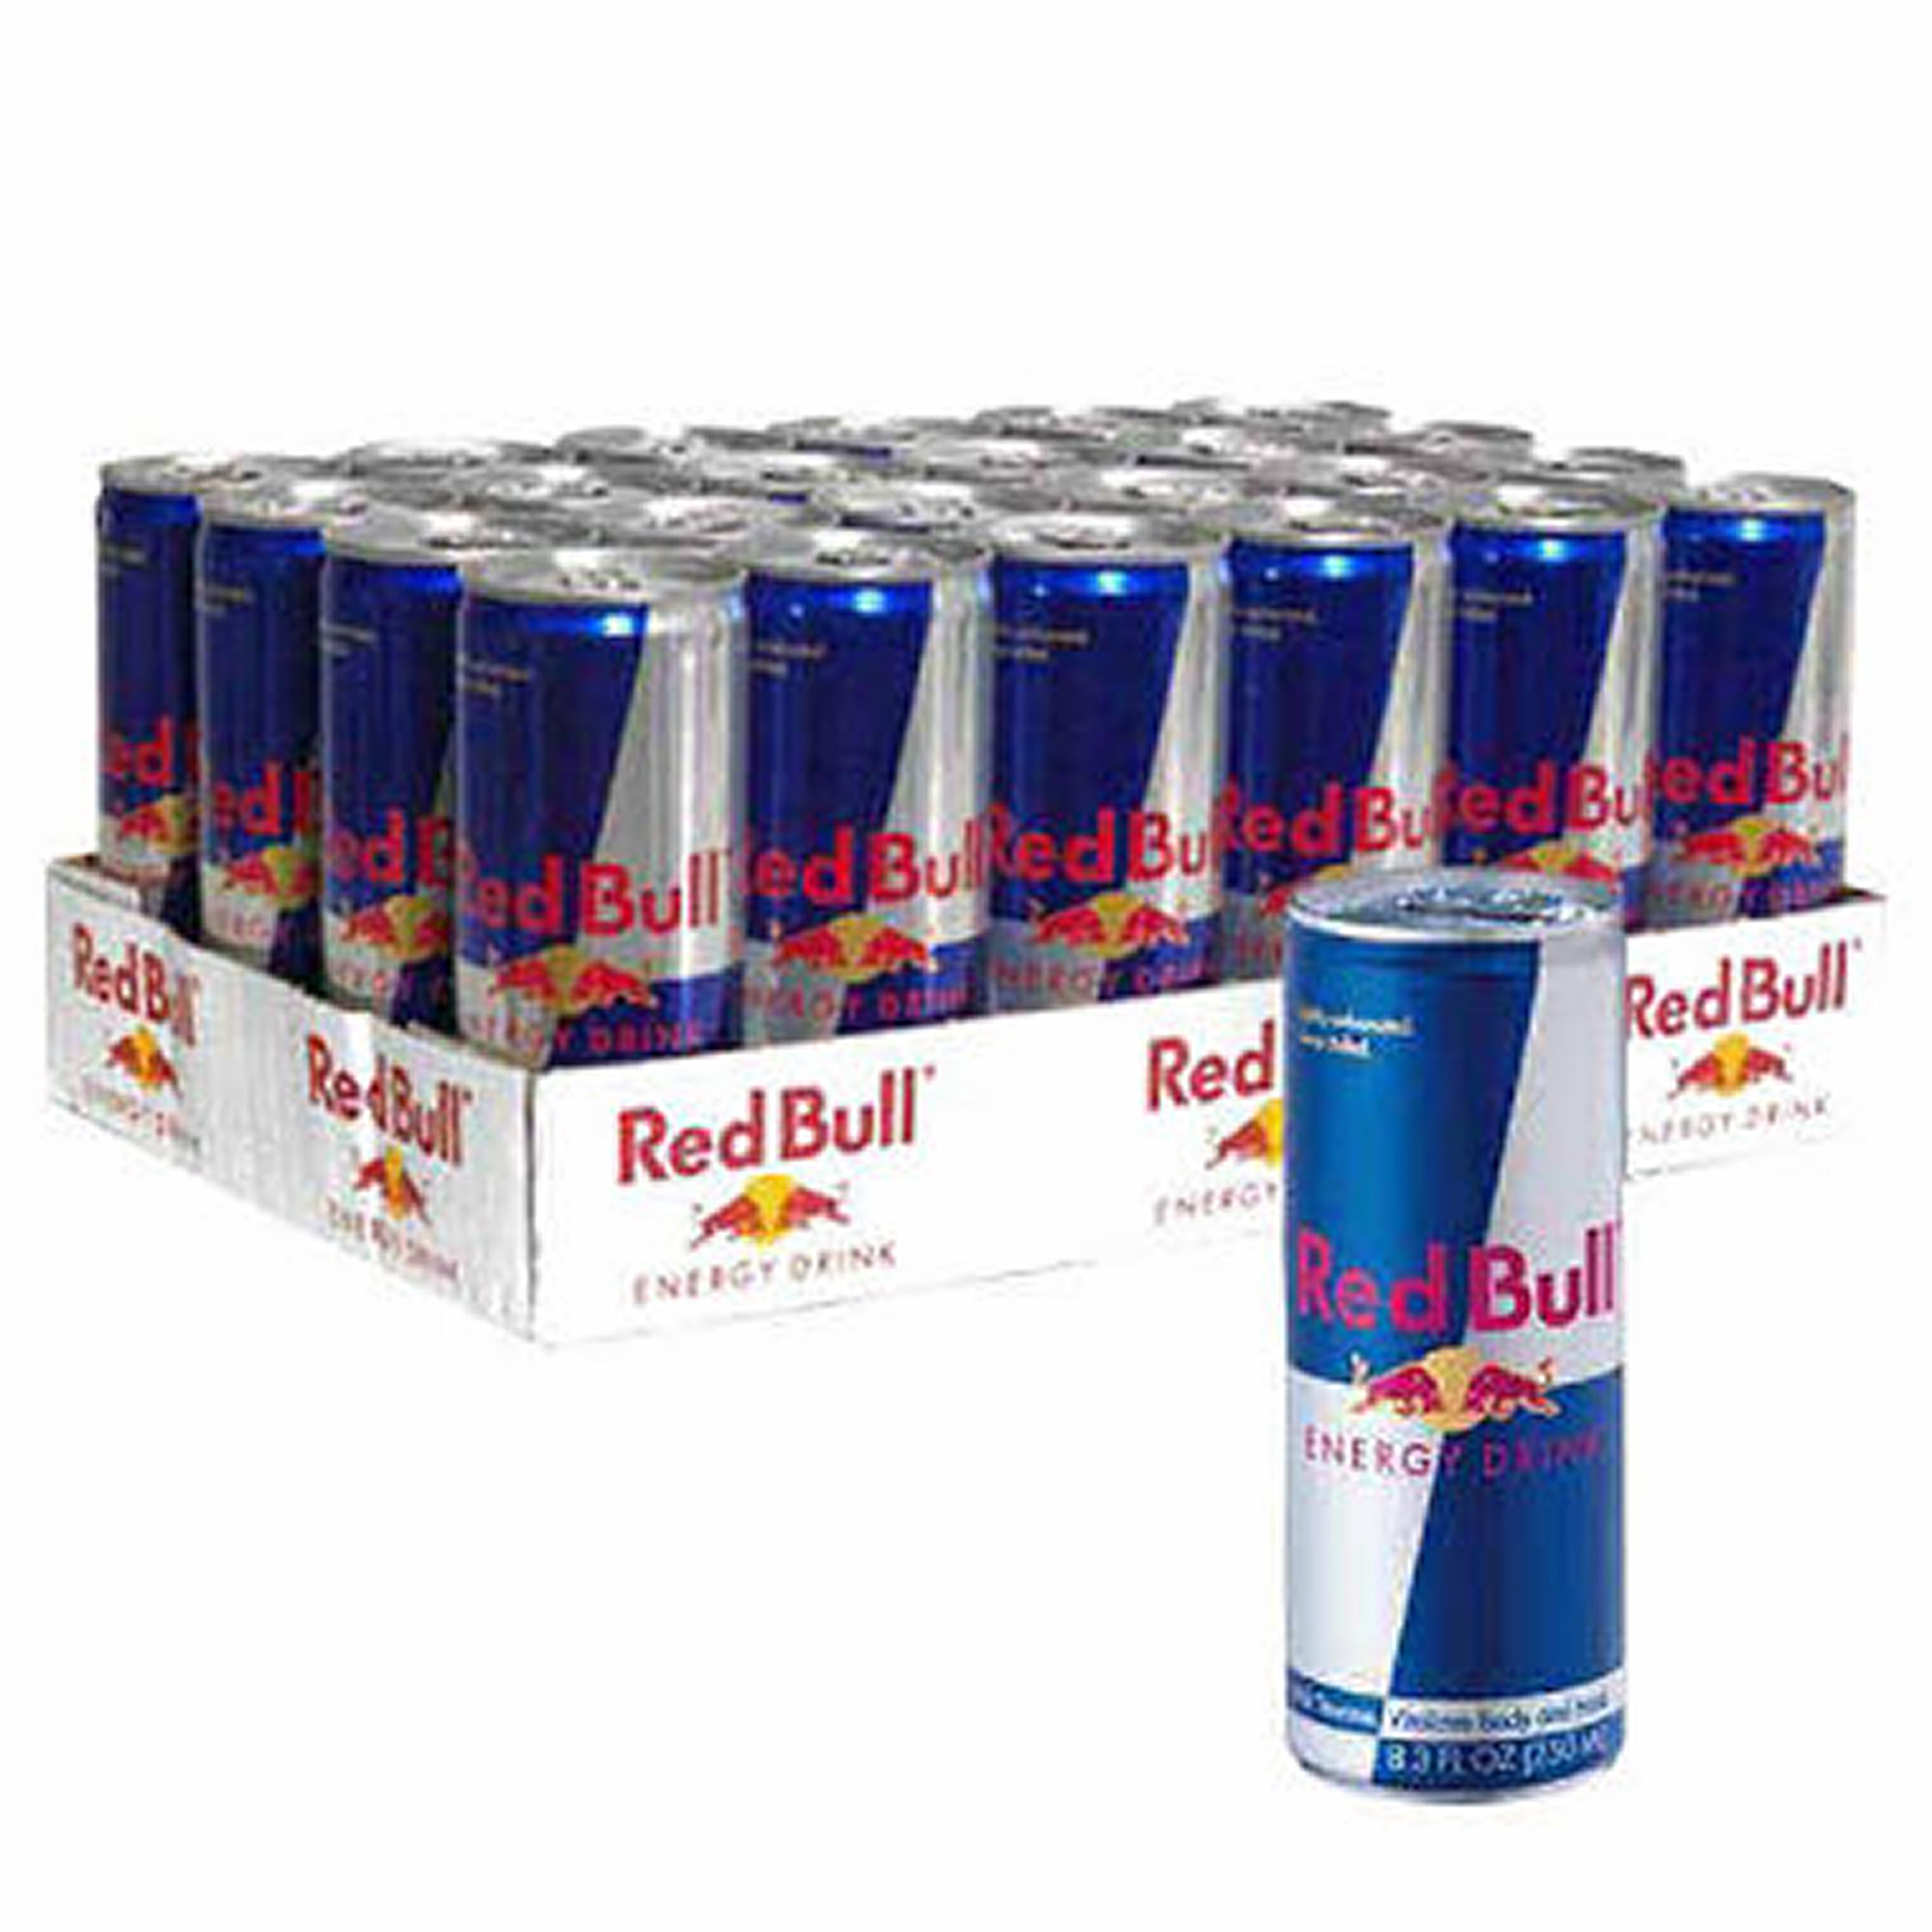 Red bull energy drink. XL energy drink and Monster energy drink